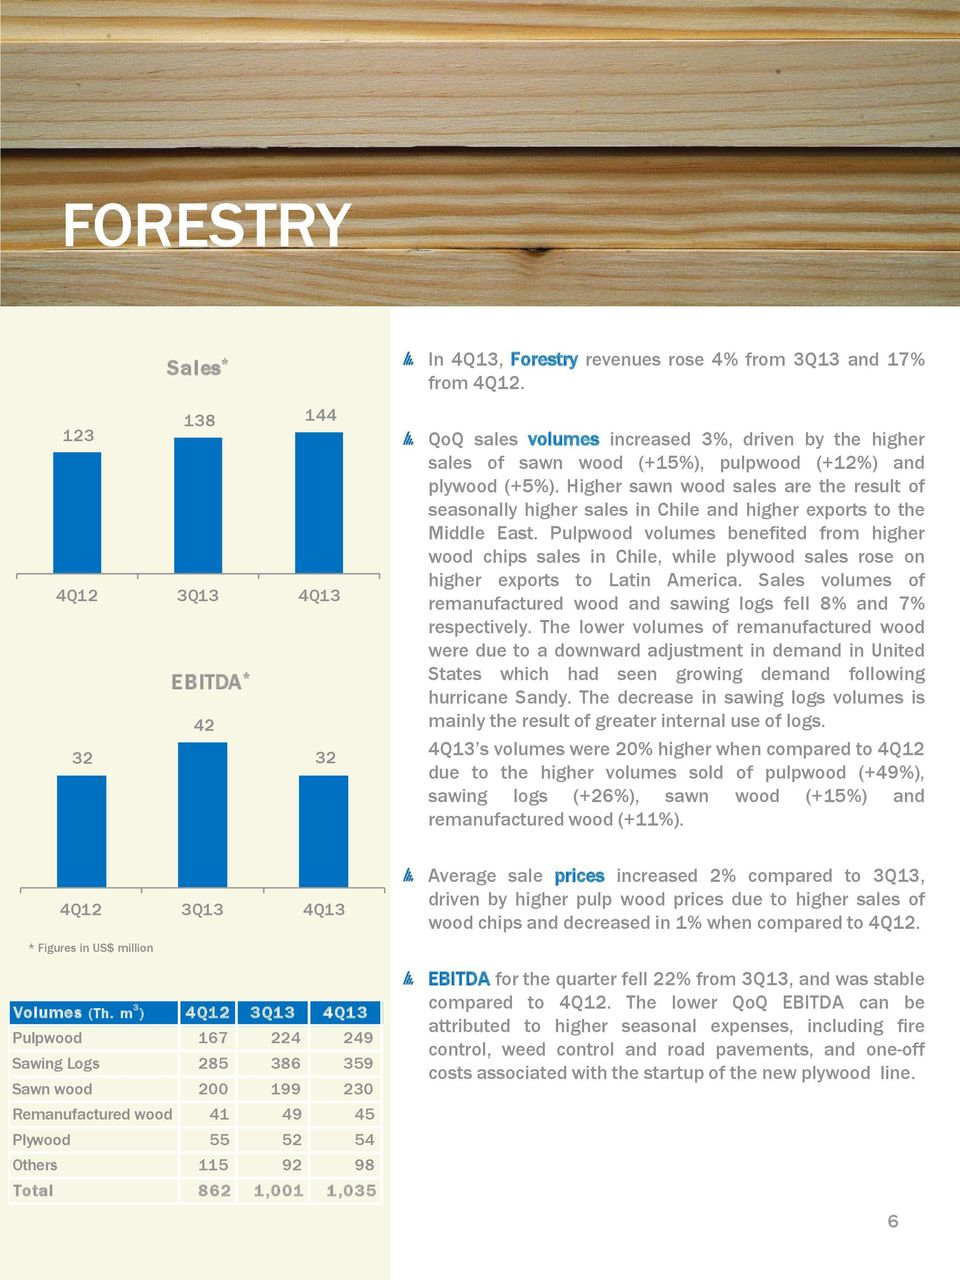 Higher sawn wood sales are the result of seasonally higher sales in Chile and higher exports to the Middle East.